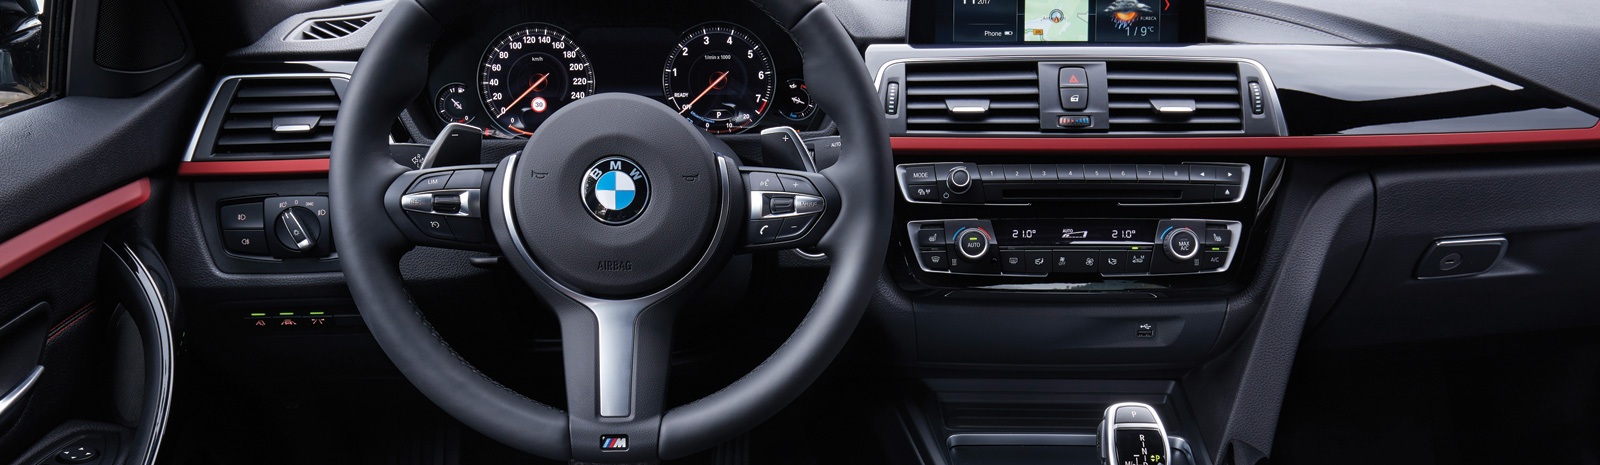 Certified Pre-Owned BMW model